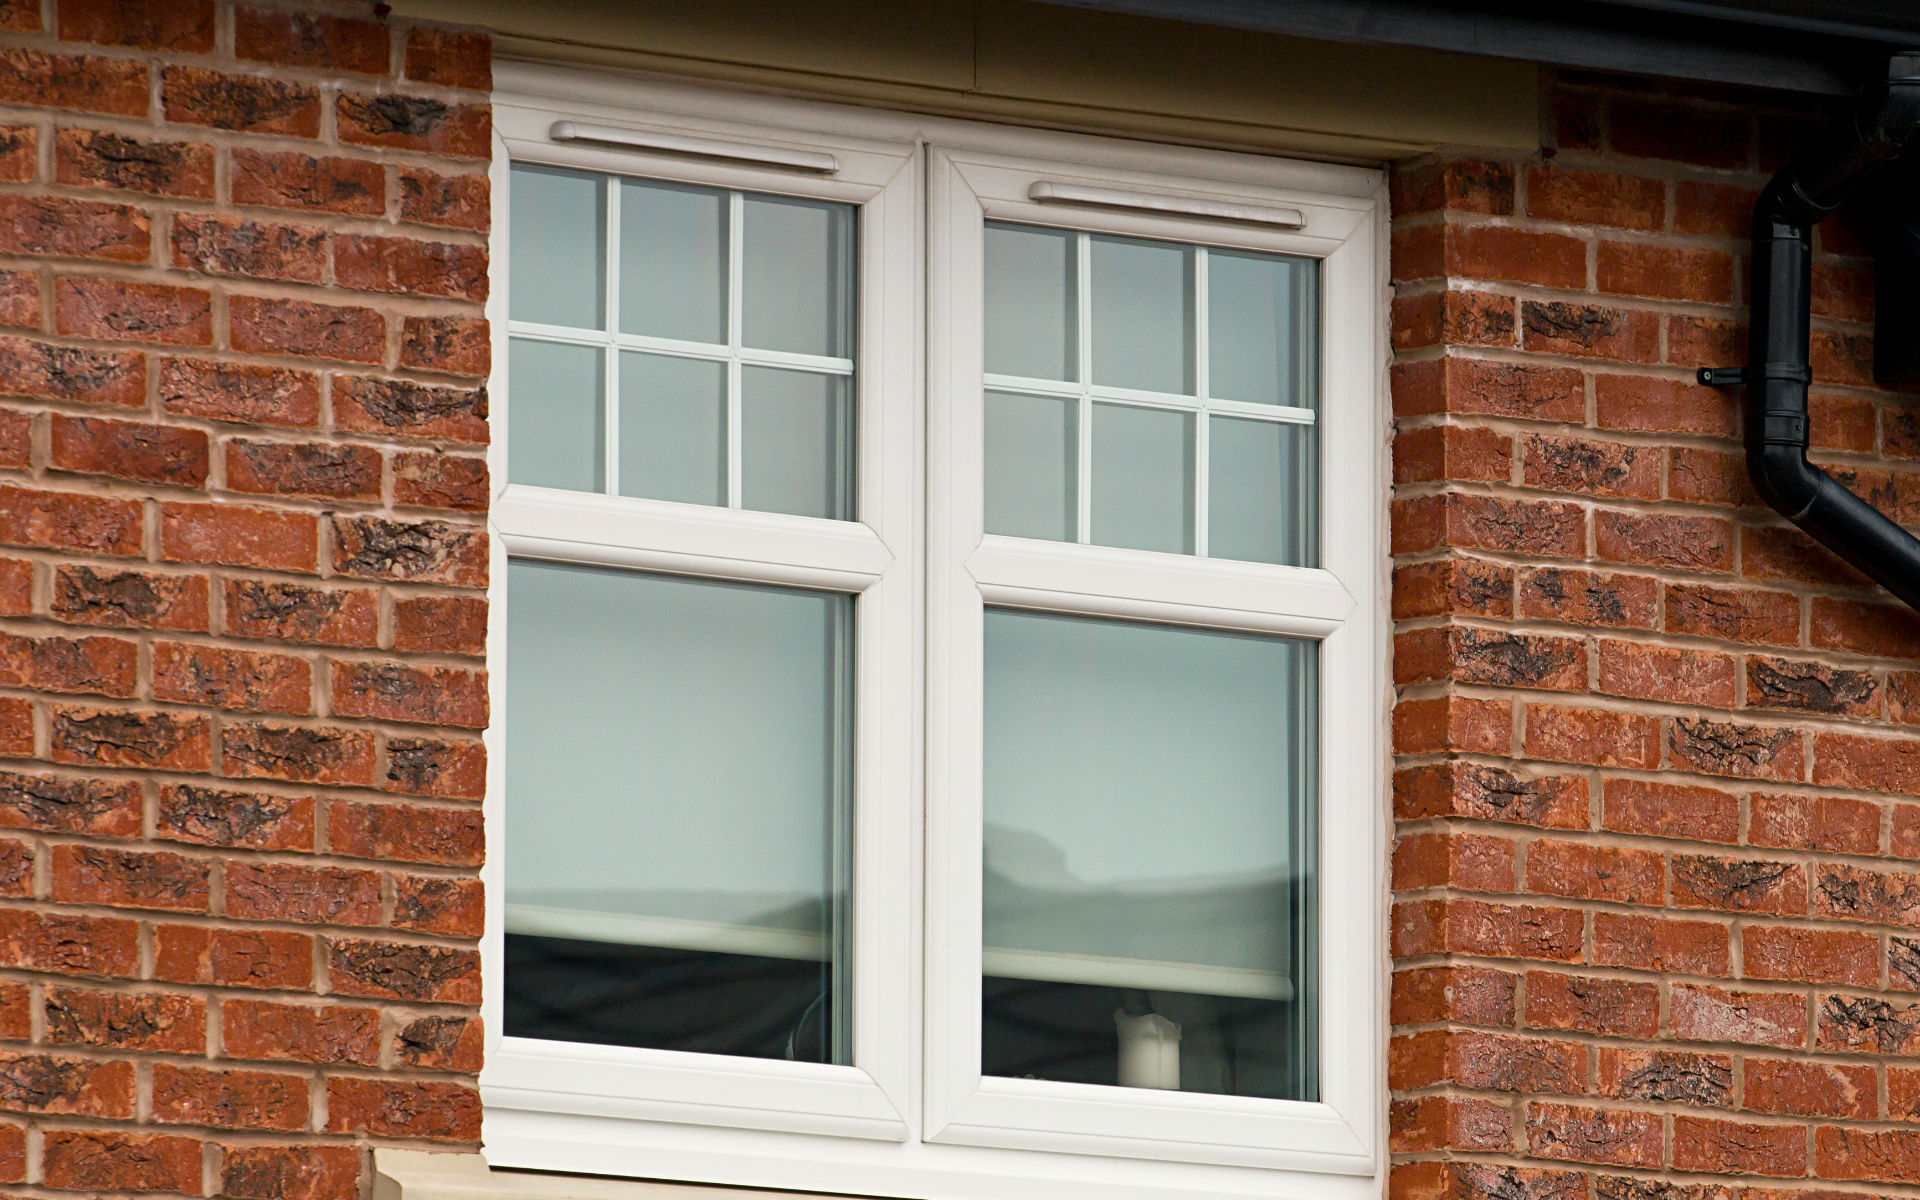 Secure windows in a range of designs